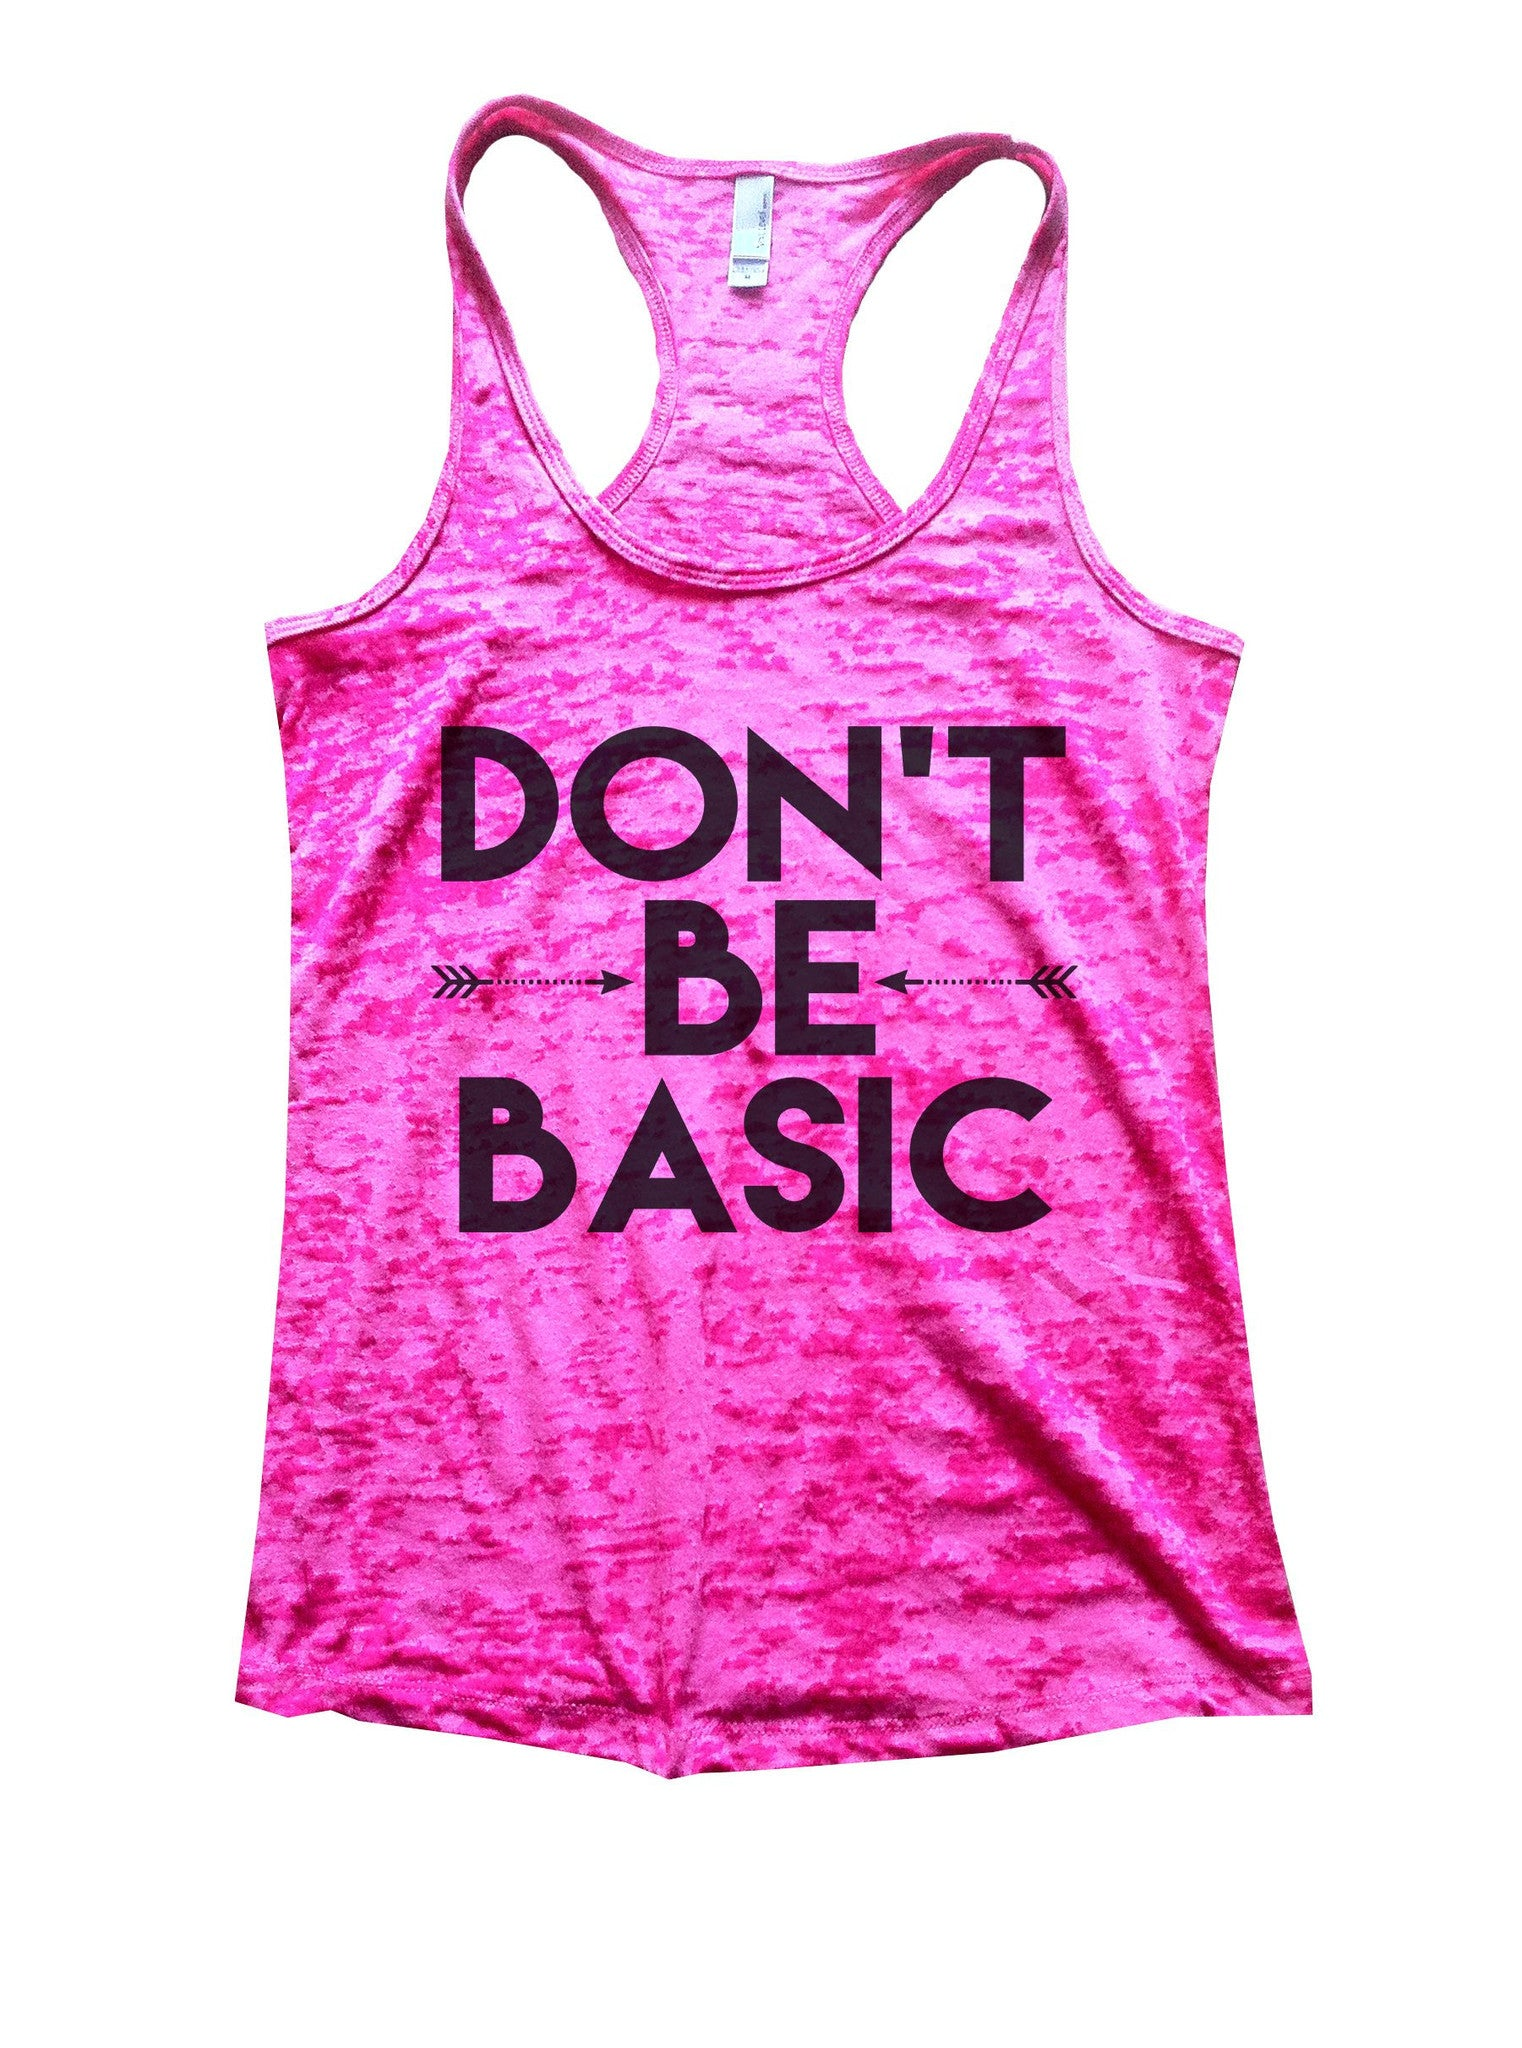 Don't Be Basic Burnout Tank Top By BurnoutTankTops.com - 920 - Funny Shirts Tank Tops Burnouts and Triblends  - 7